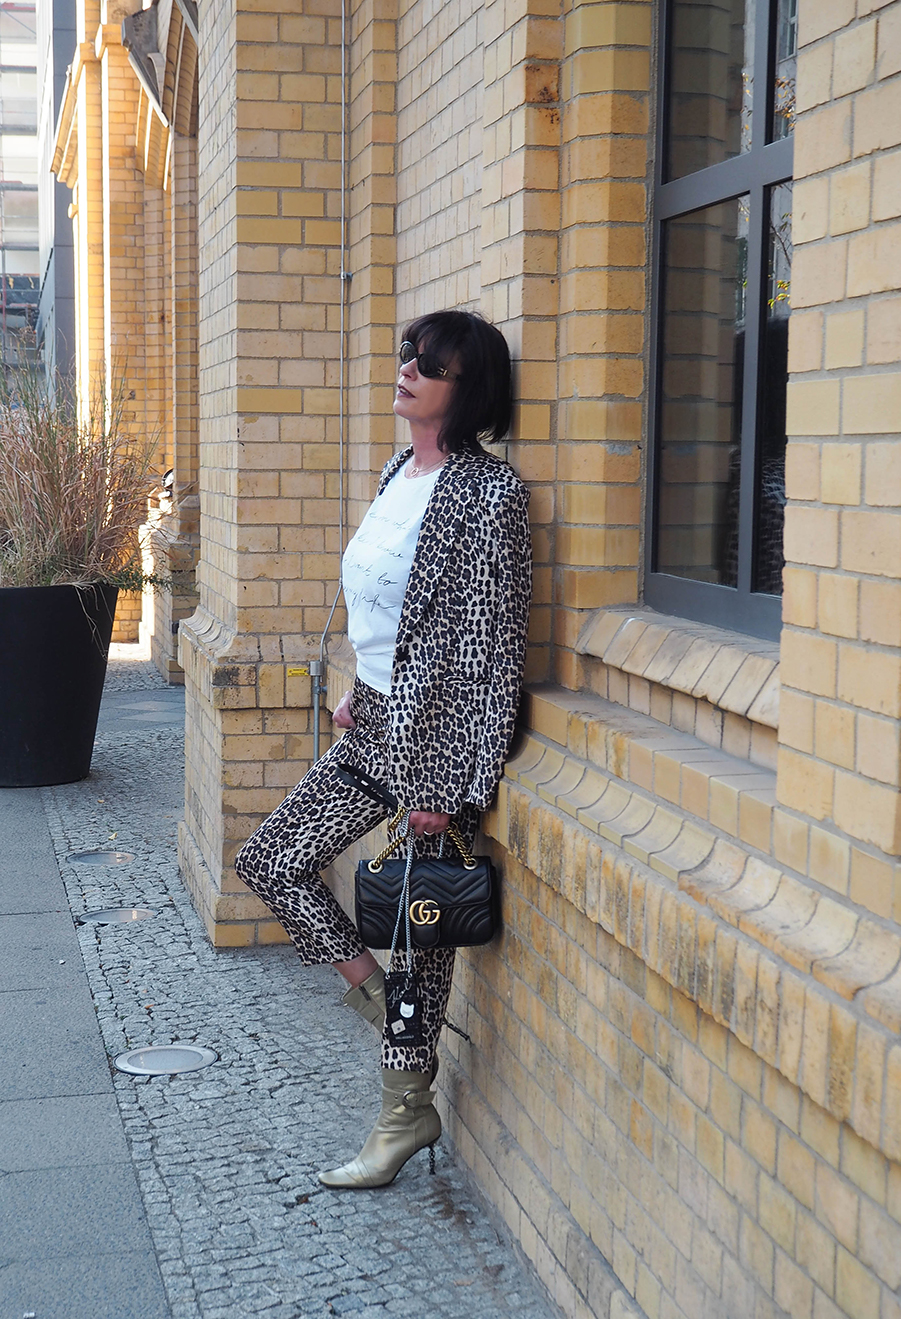 Just-take-a-look Berlin - Animal Print for Fall